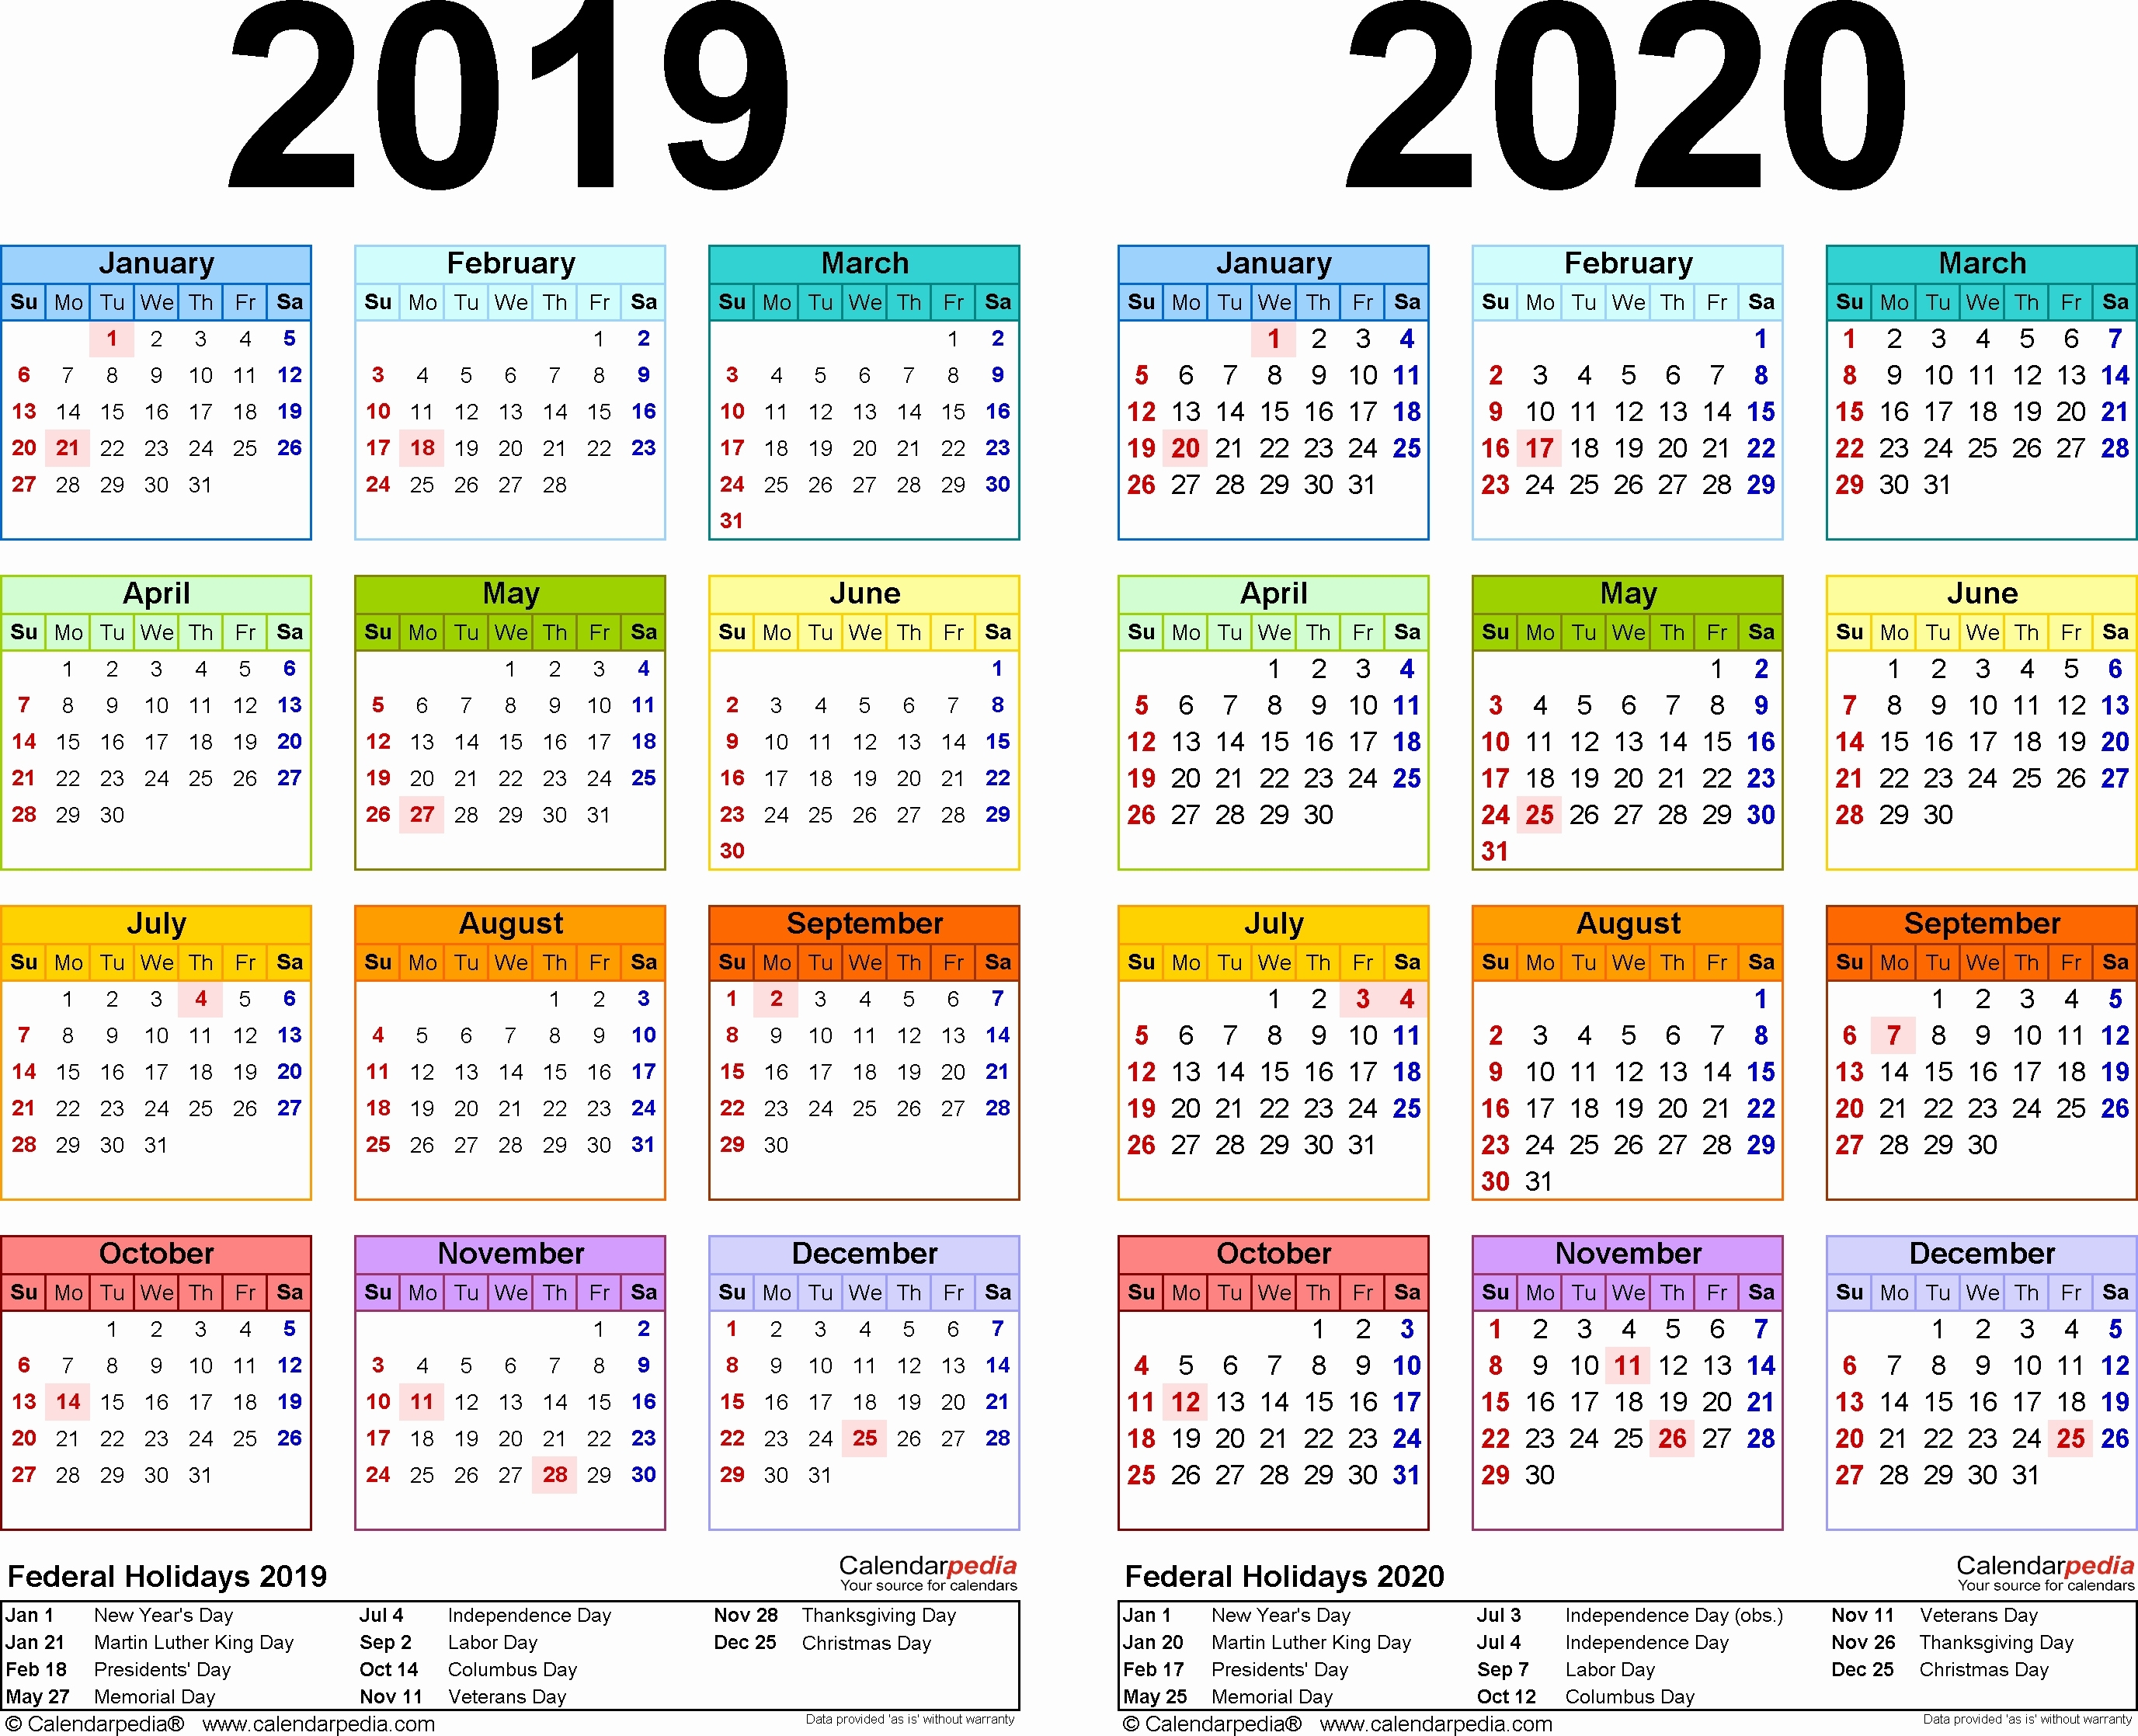 Free 2020 Indesign Calendar Template | Monthly Printable-2020 Calendar Template Indesign